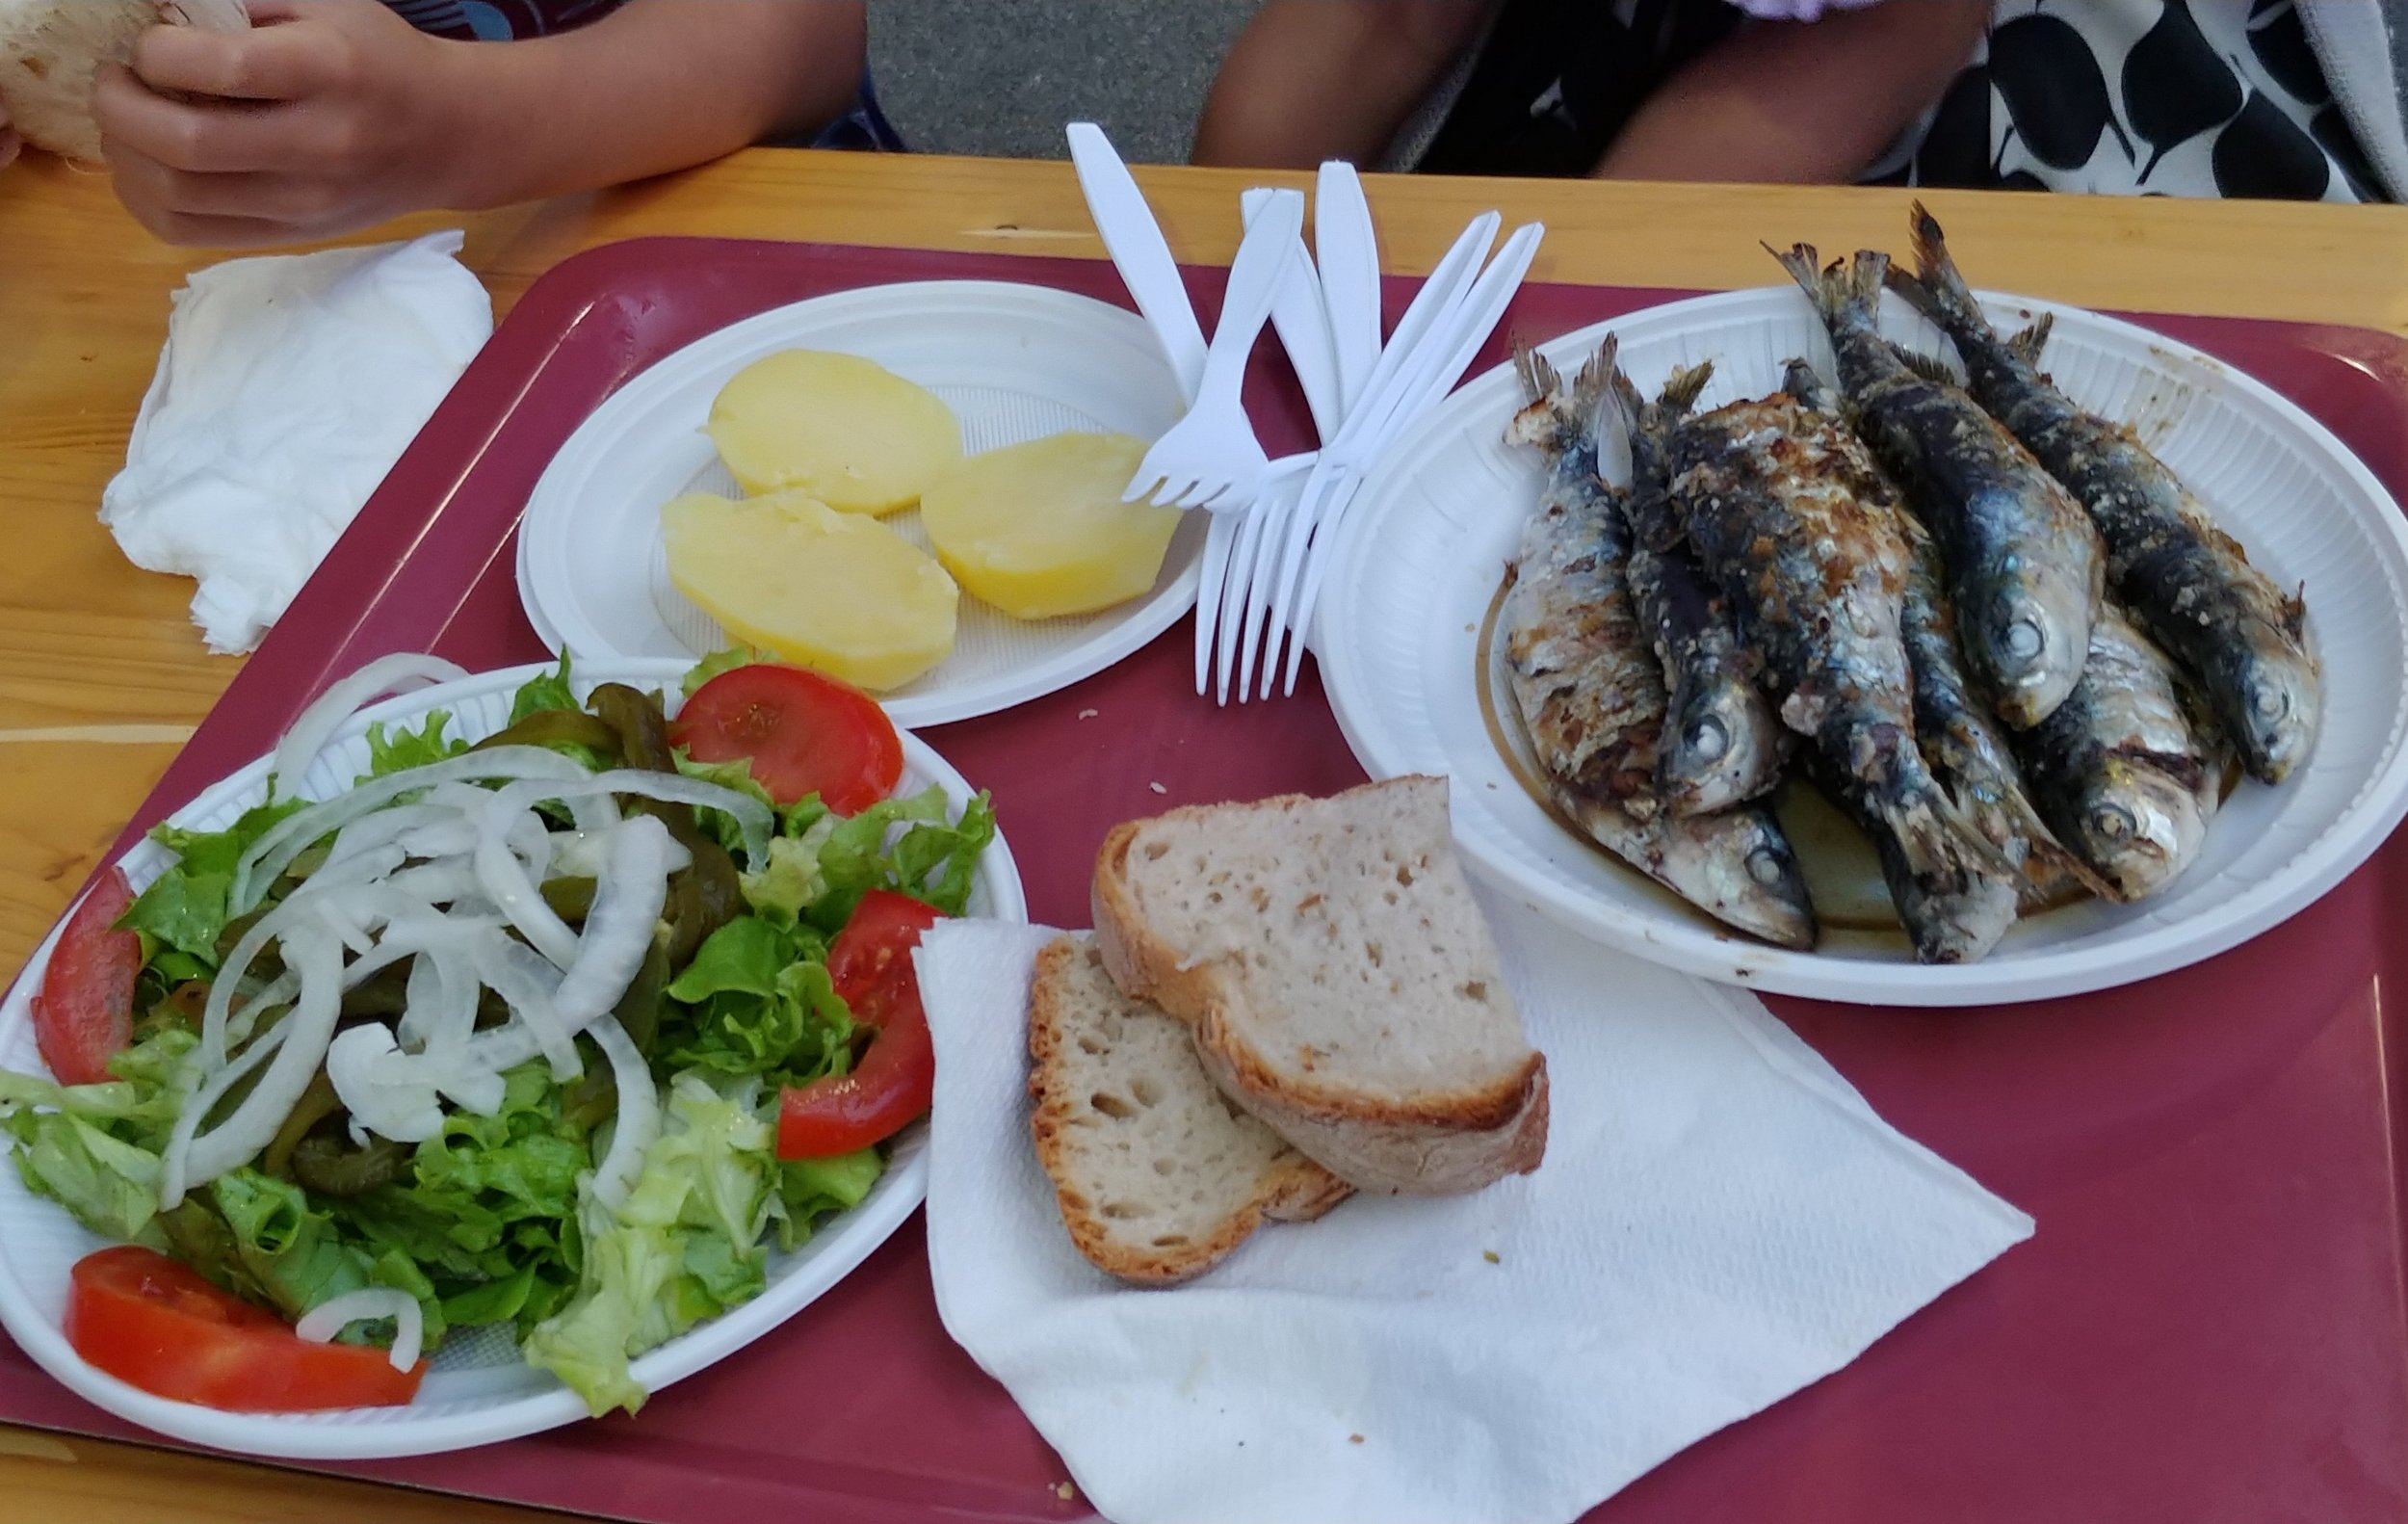 Unsurprisingly, sardines were on the menu.